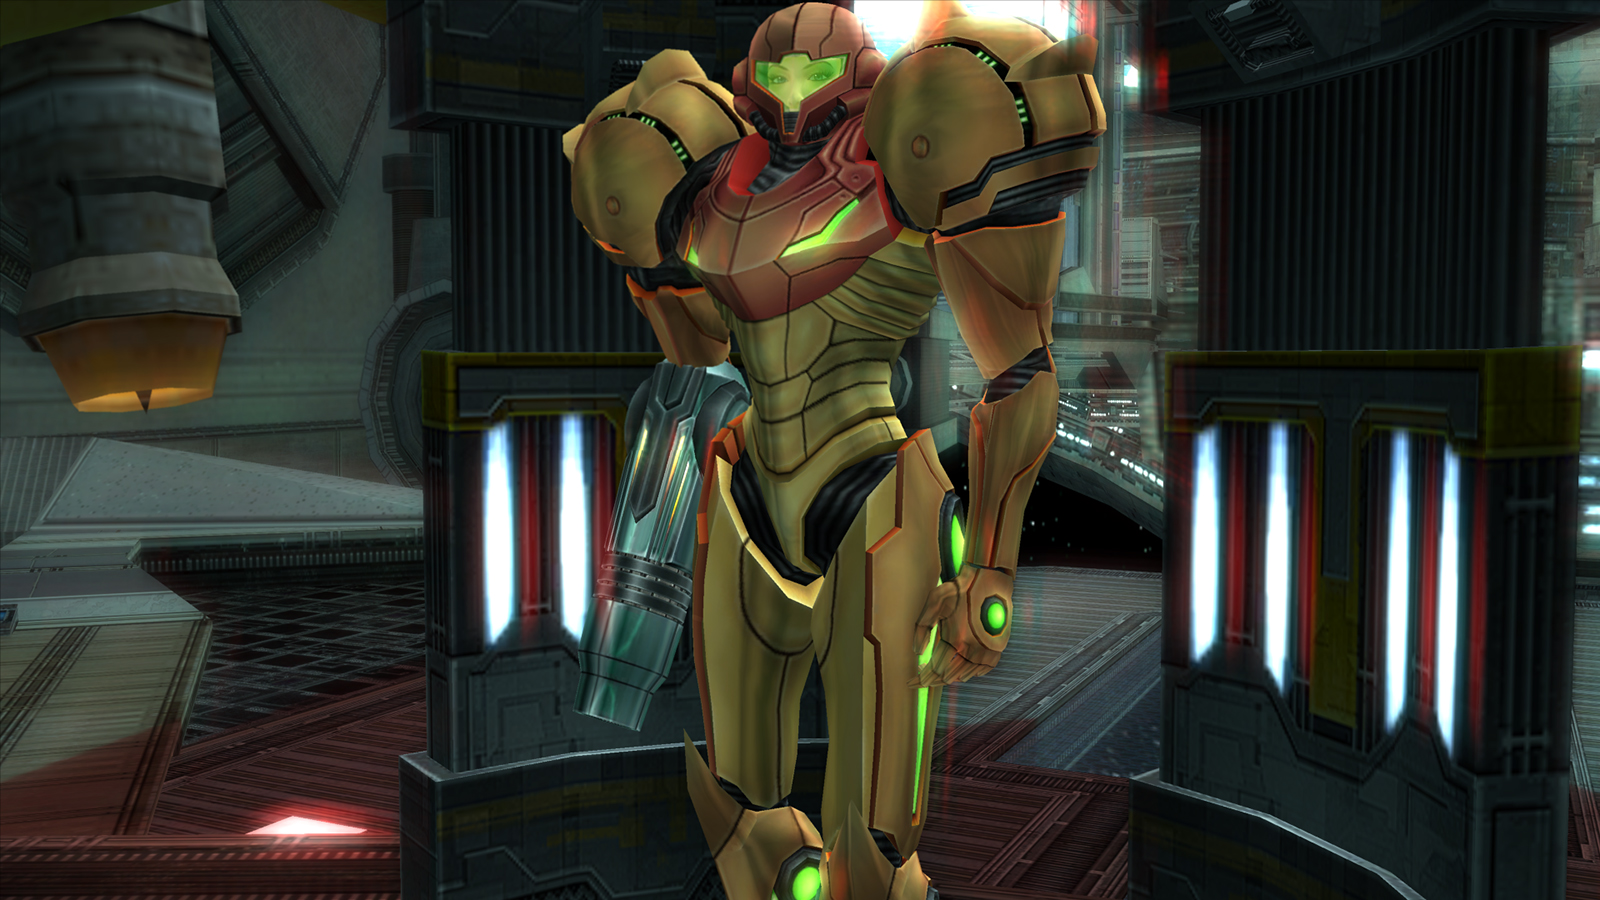 Metroid Prime 4 announced during Nintendo's E3 Spotlight